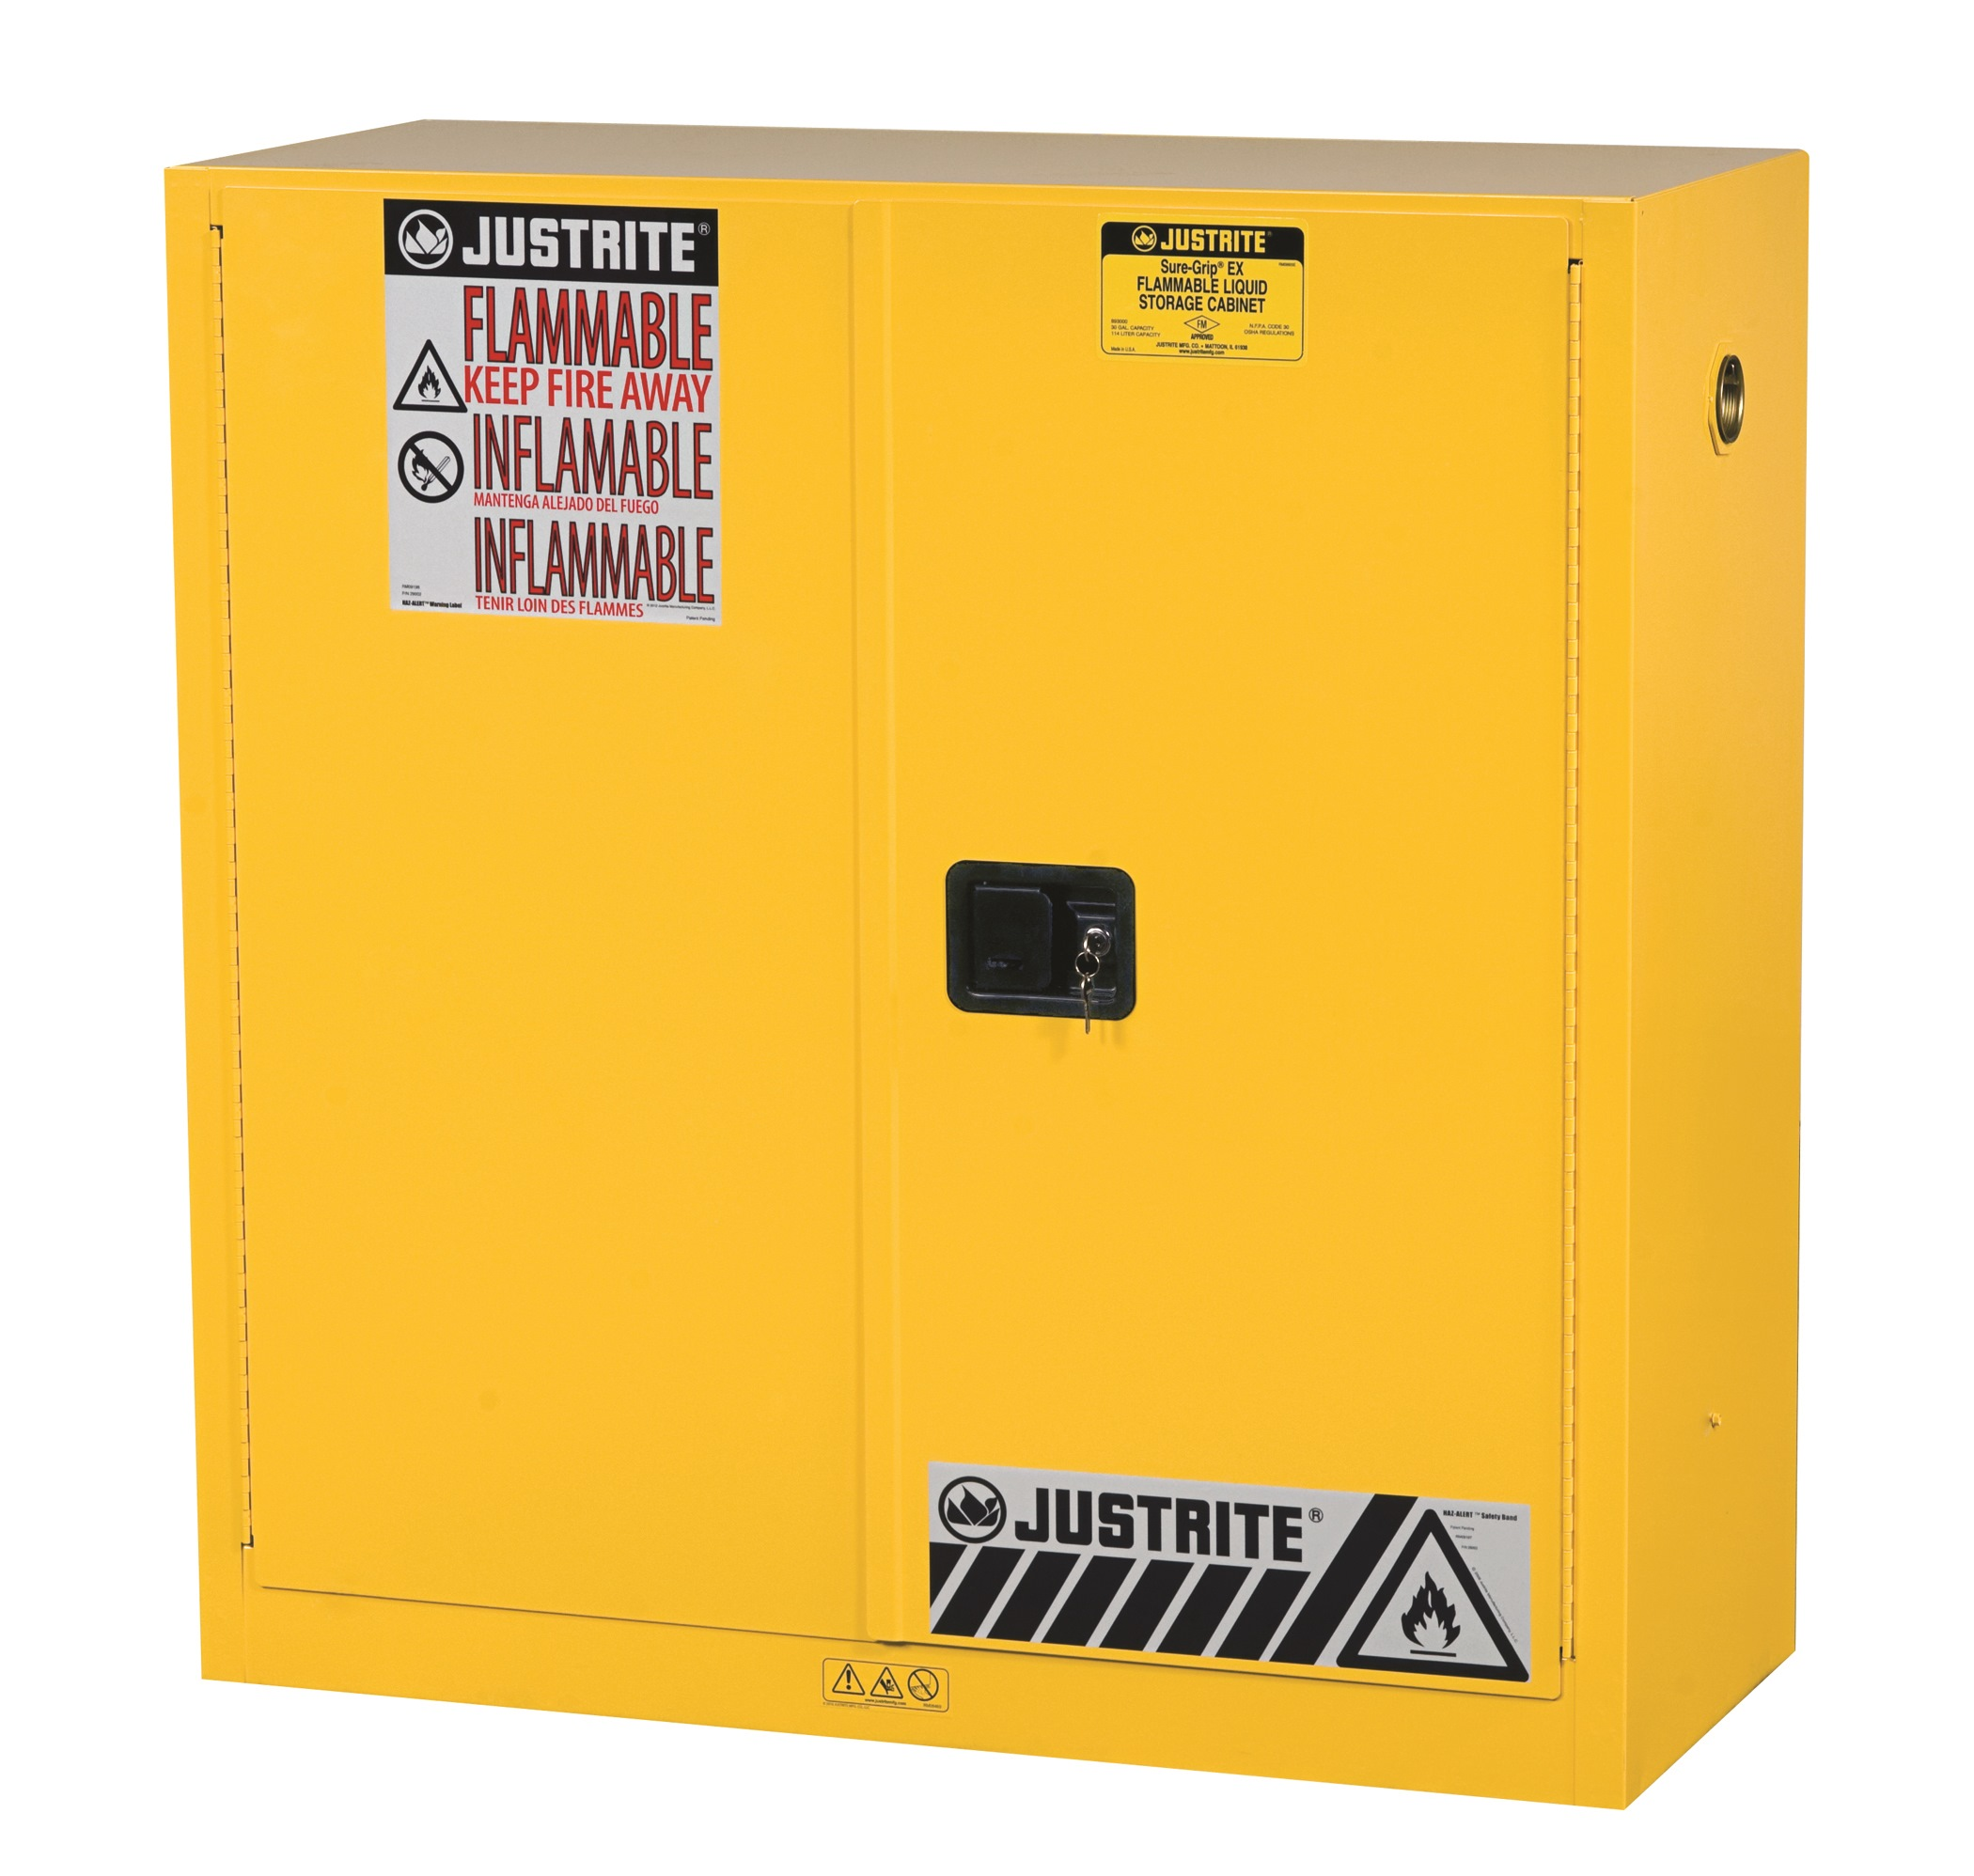 JUSTRITE 30 GAL YELLOW CABINET SURE-GRIP EX WITH PADDLE HANDLE JUM893000